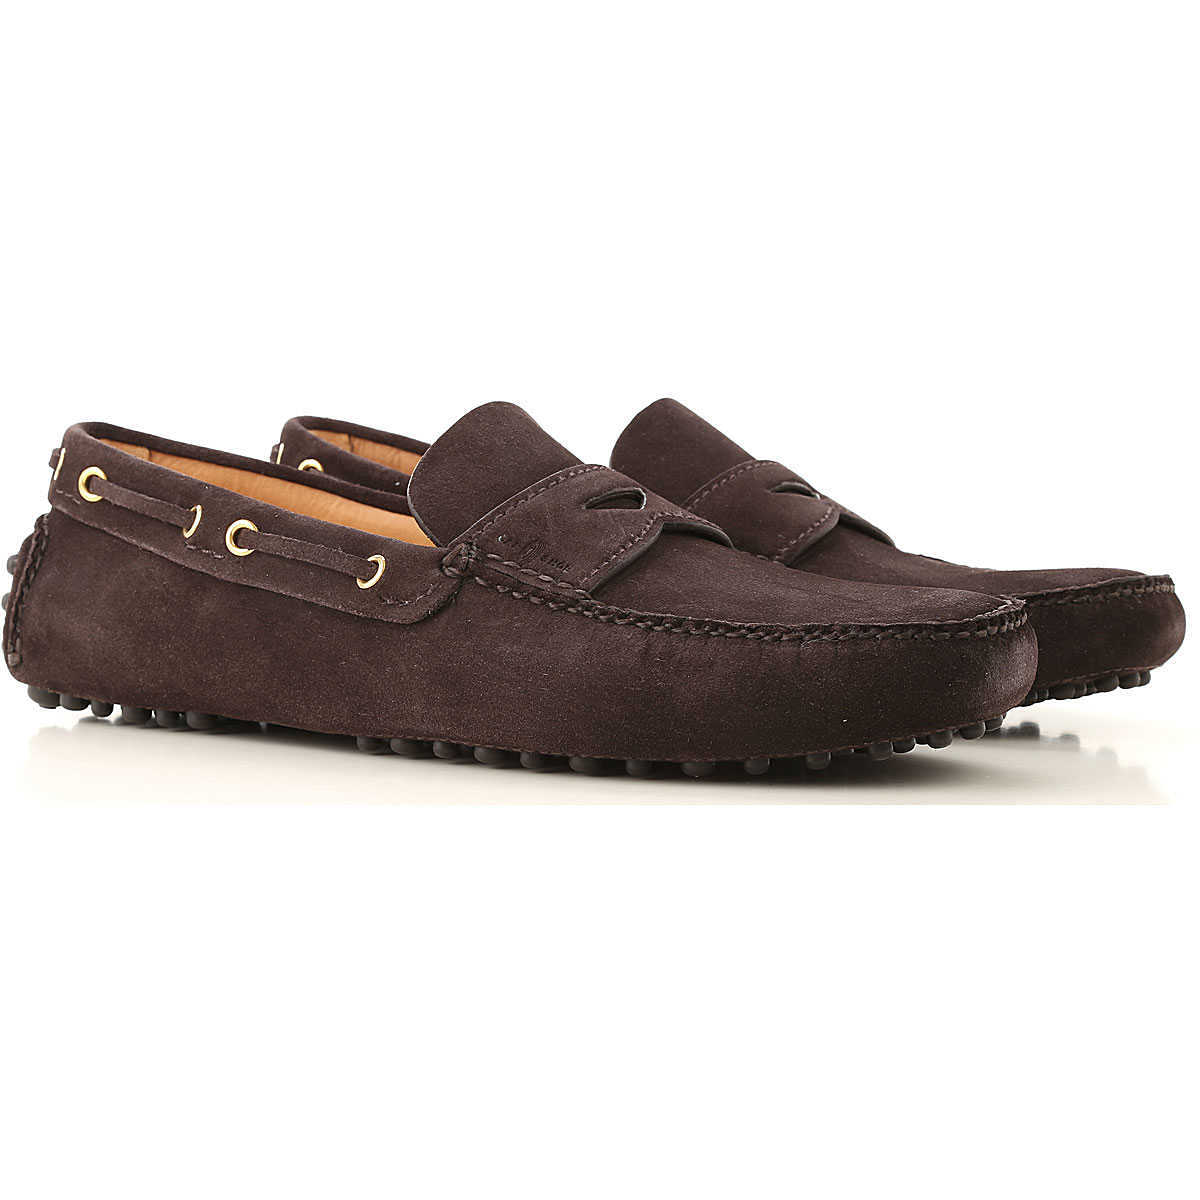 Car Shoe Loafers for Men On Sale Brown - GOOFASH